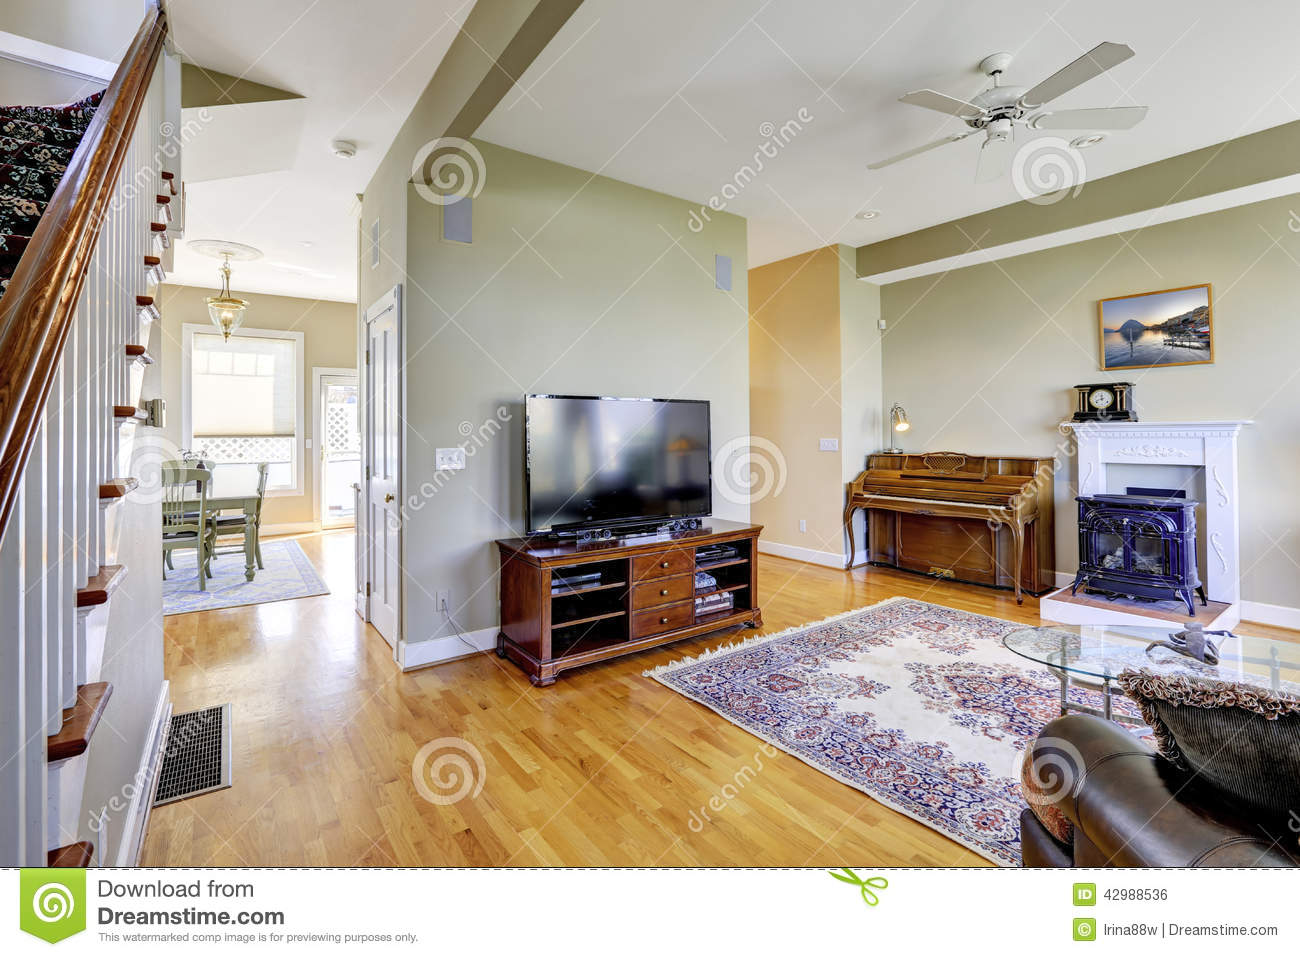 Living Room Interior With Fireplace And Piano Stock Photo Image Of Hardwood Bright 42988536